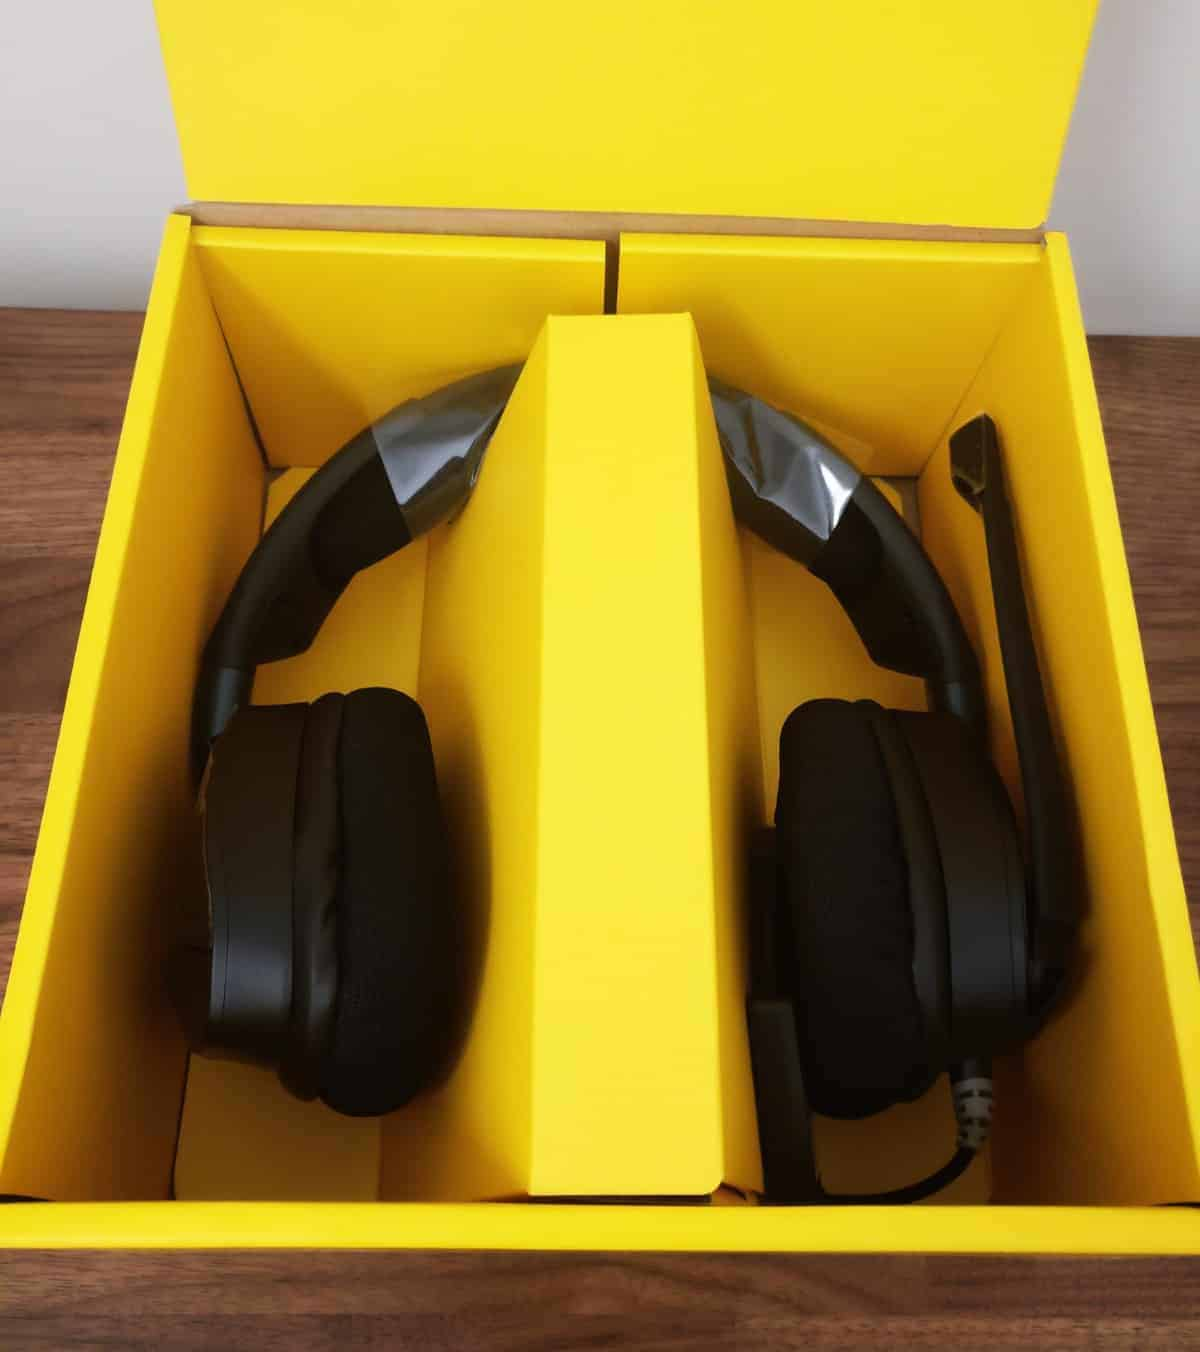 corsair-void-pro-photos-38 Corsair Void Pro Surround Gaming Headset Review